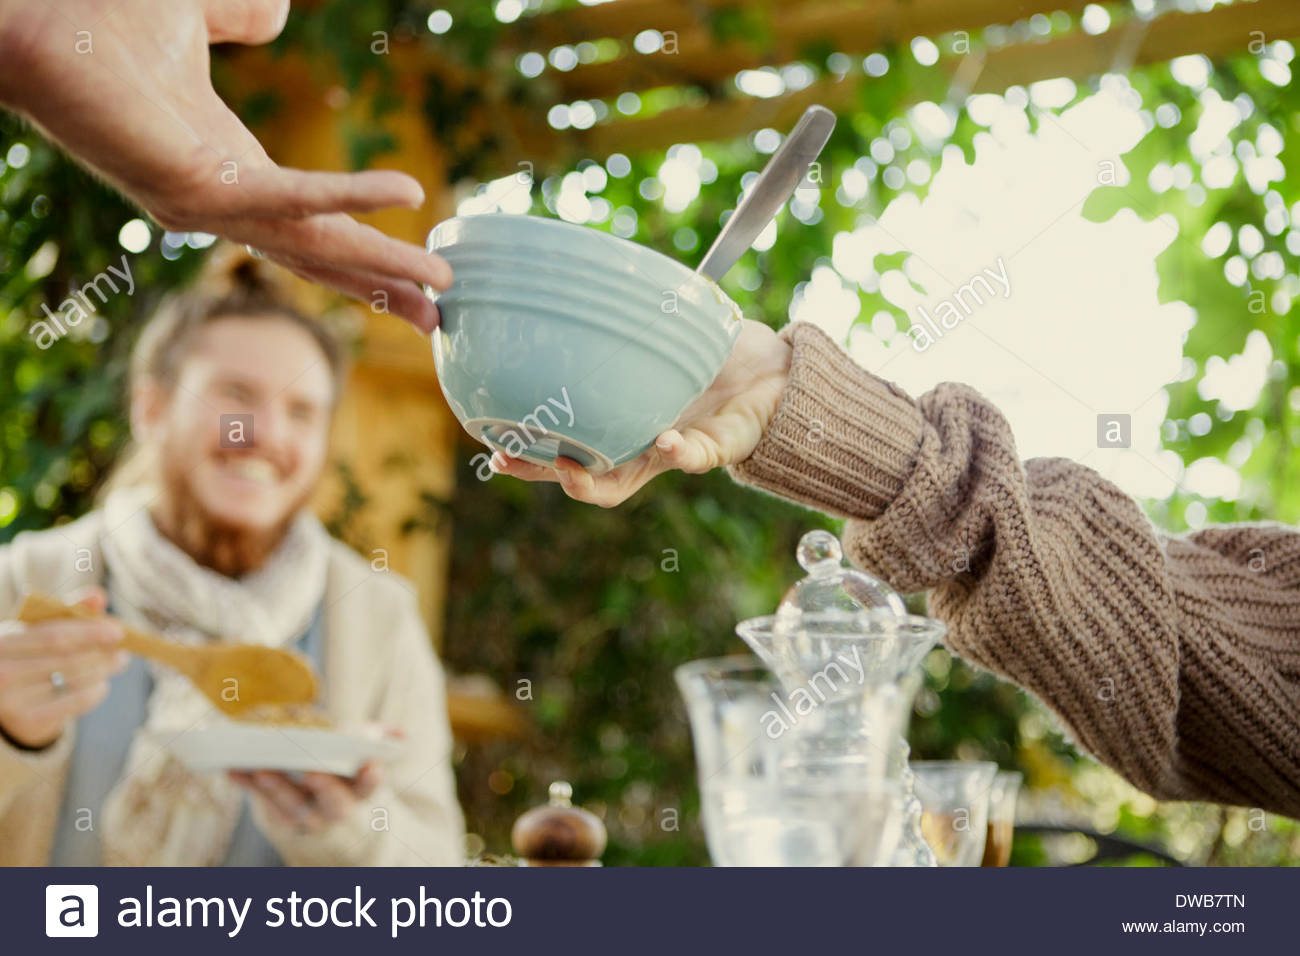 Friends passing food bowl at garden party - Stock Image